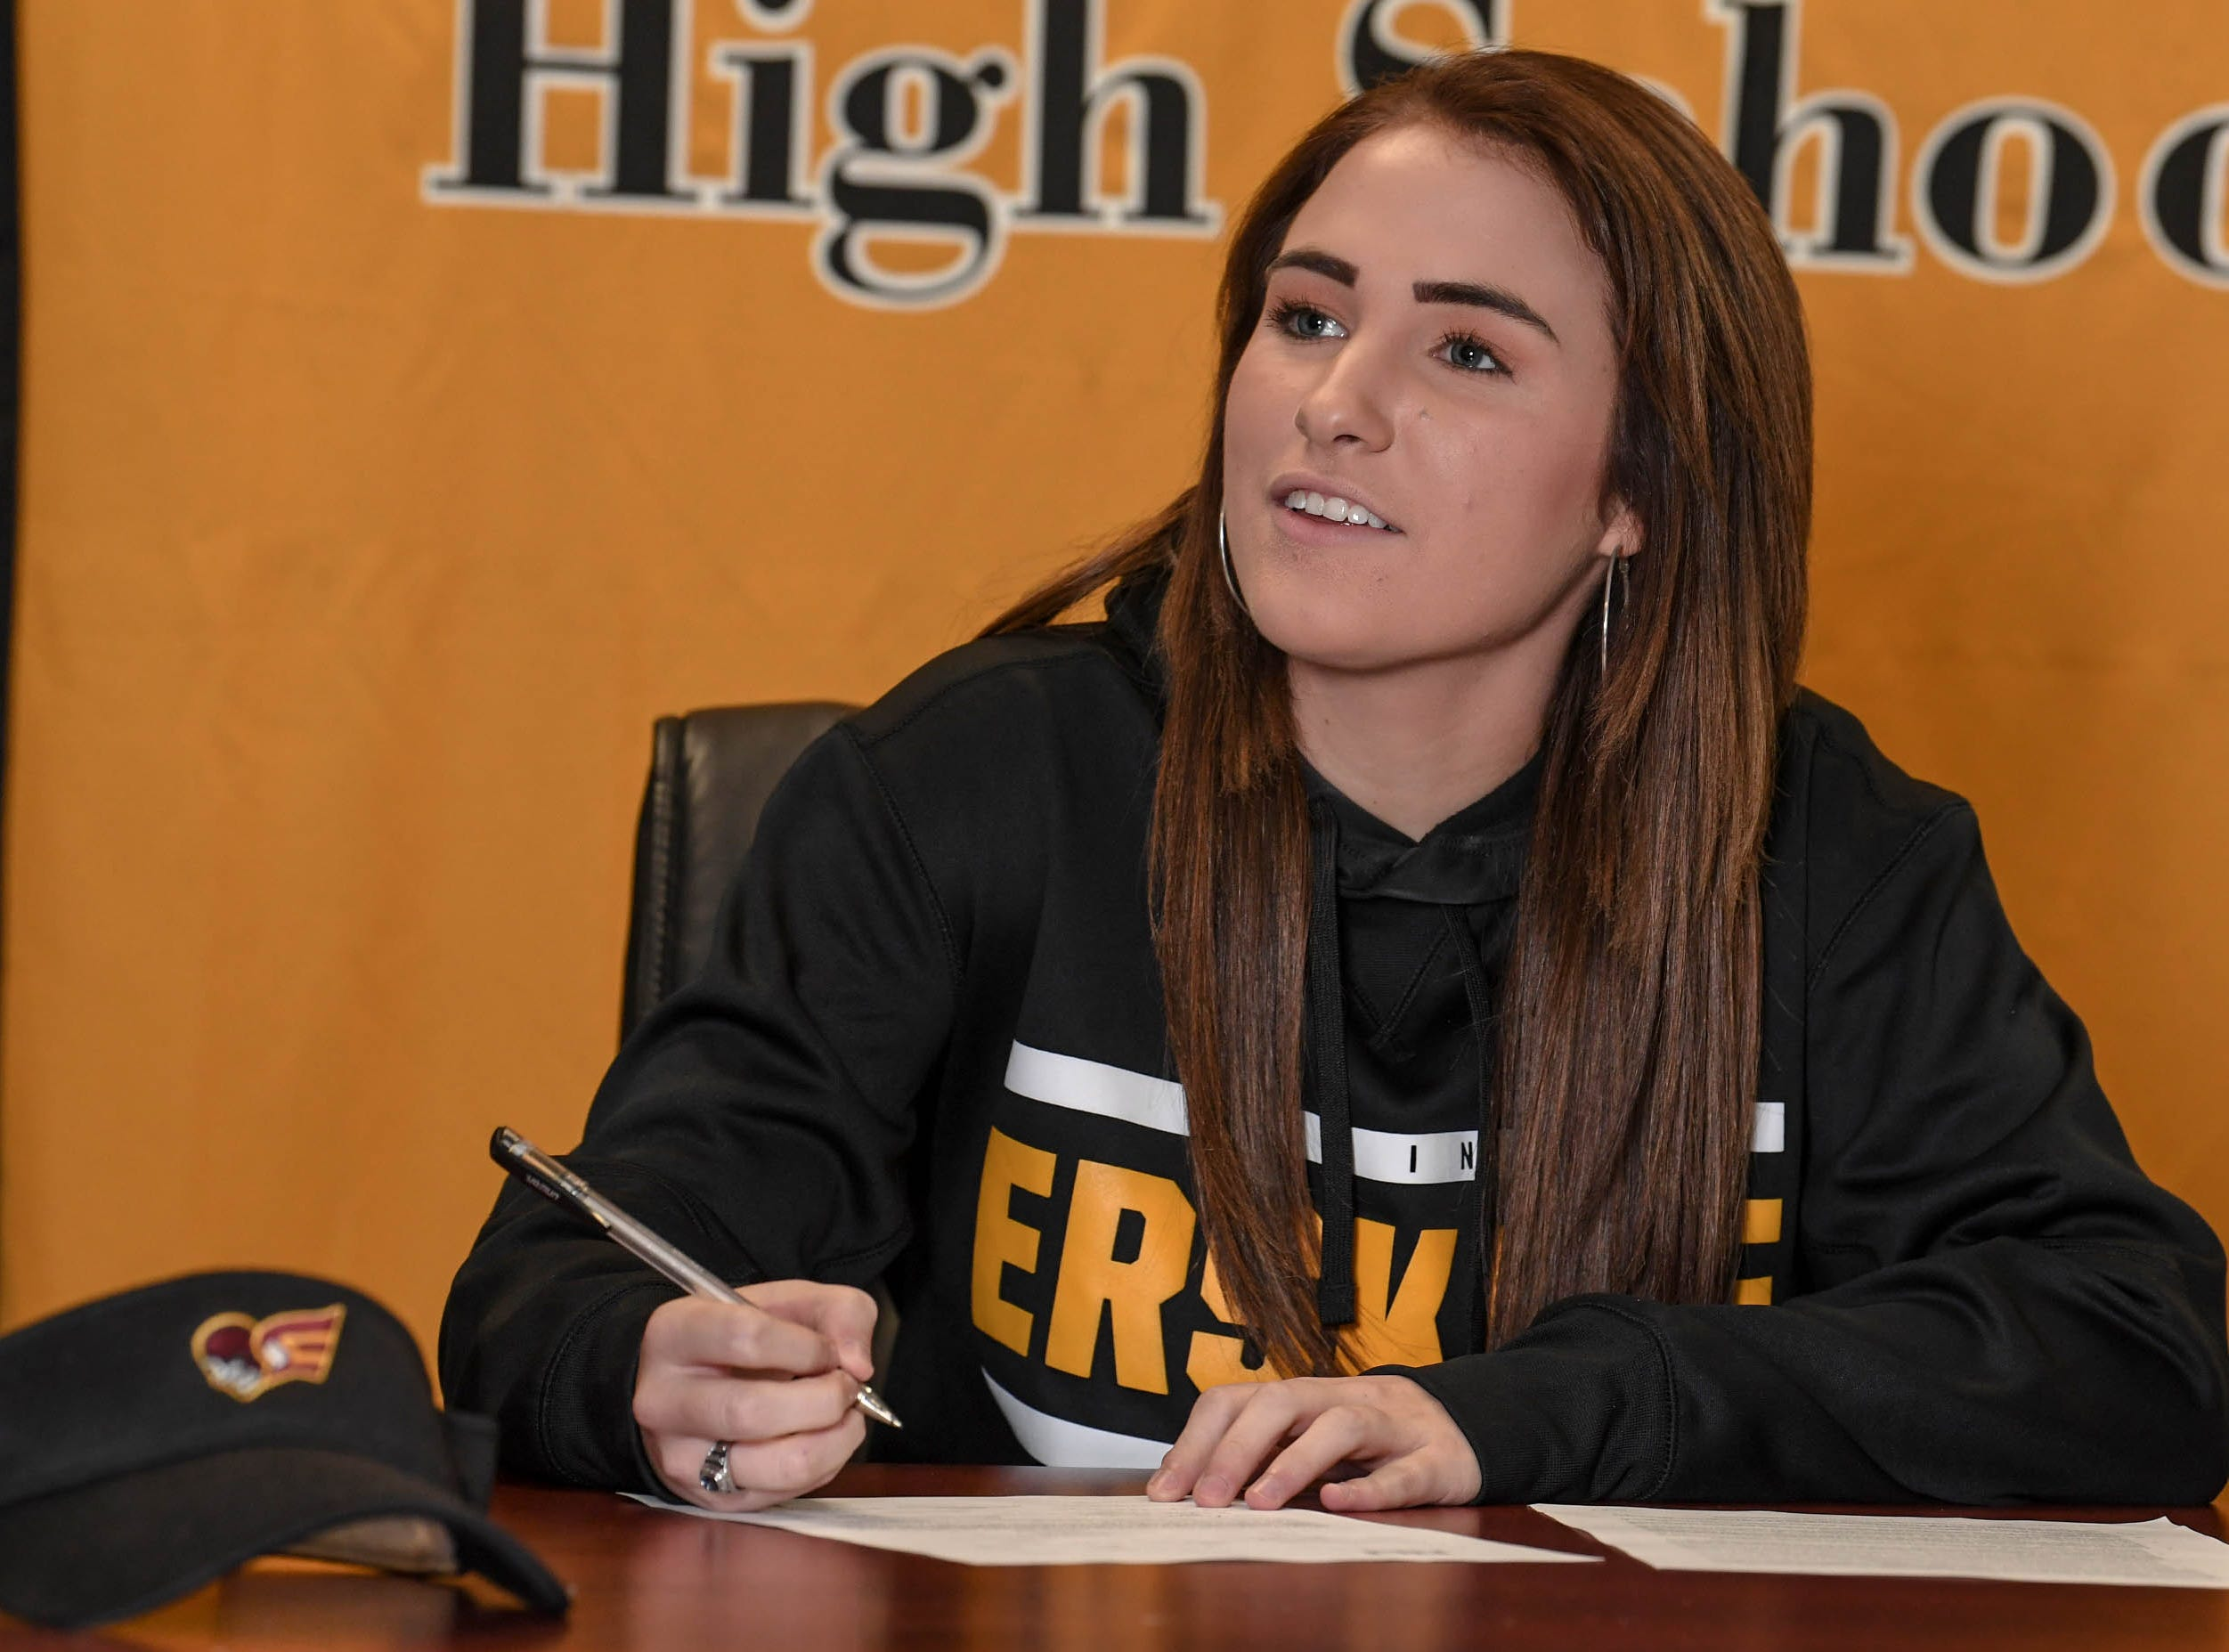 Crescent High School softball player Katie Spires signs a National Letter of Intent to play at Erskine College, during a National Signing Day event at Crescent High School in Iva on Wedesday.